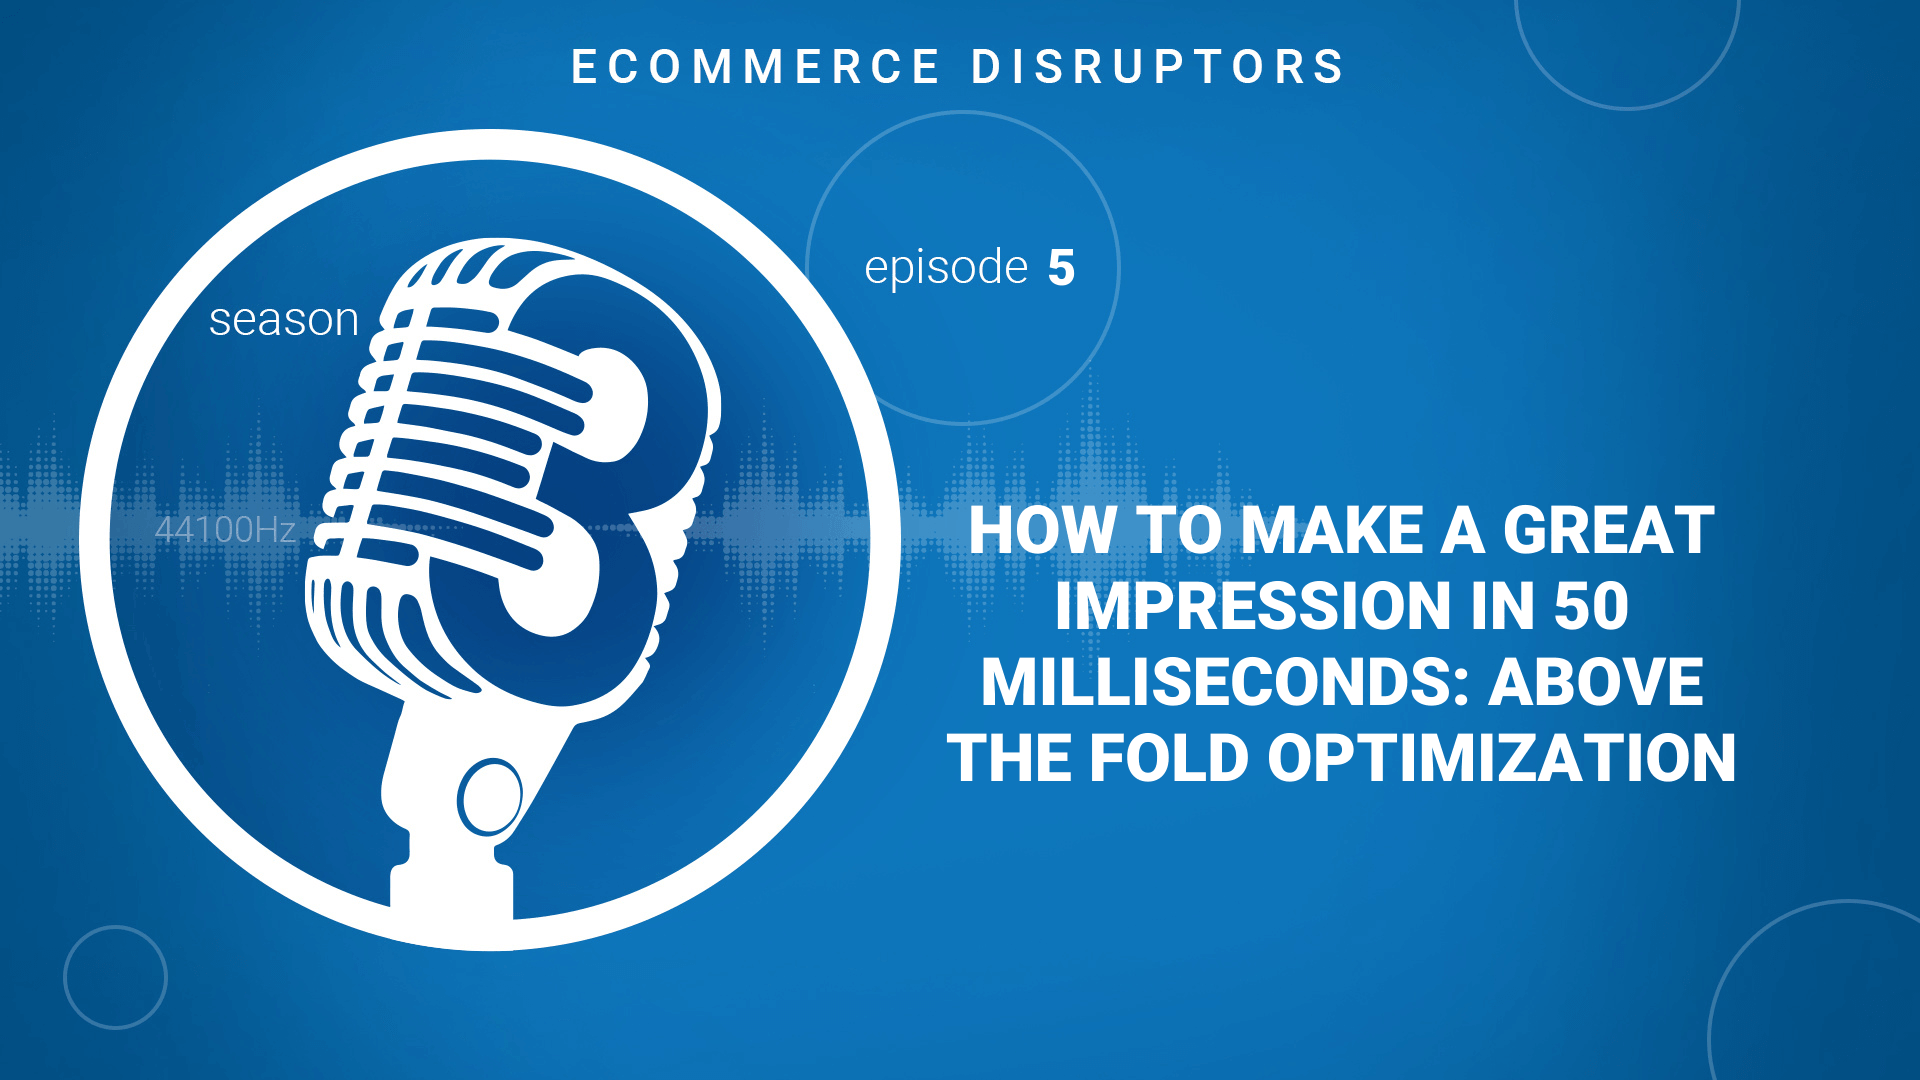 How to make a great impression in 50 milliseconds: Above the fold optimization